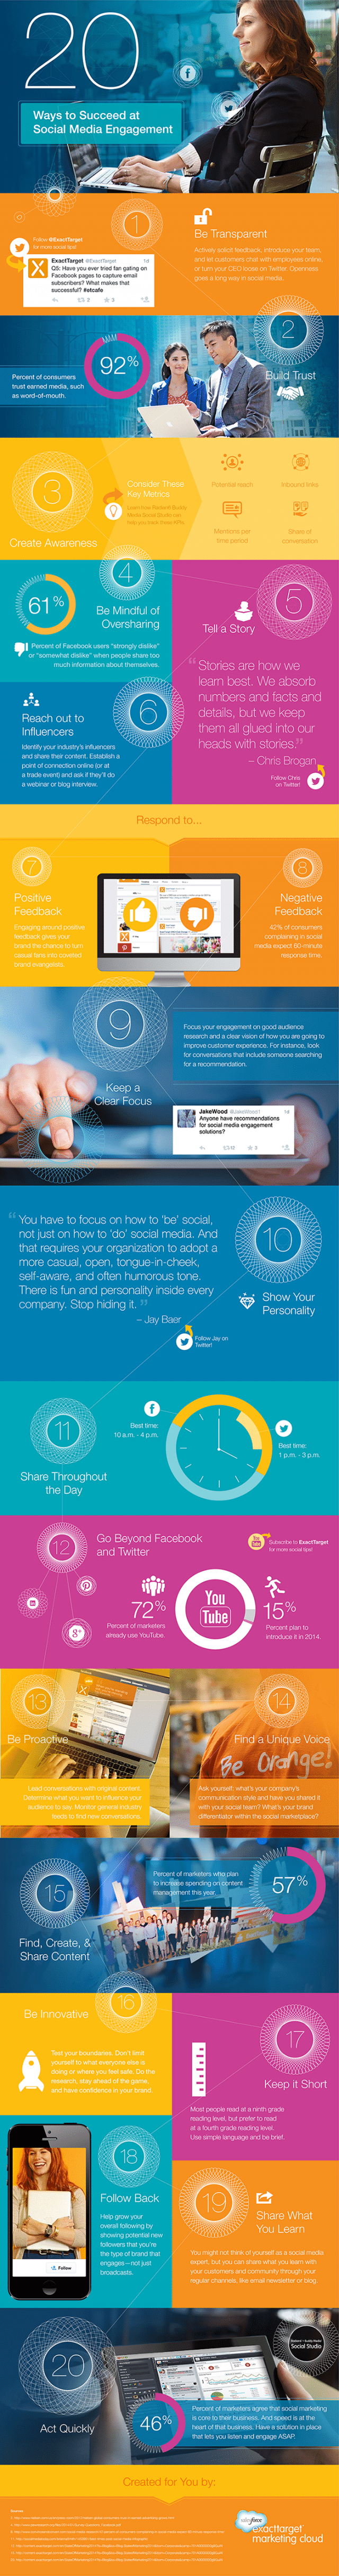 infographic tips social media engagement